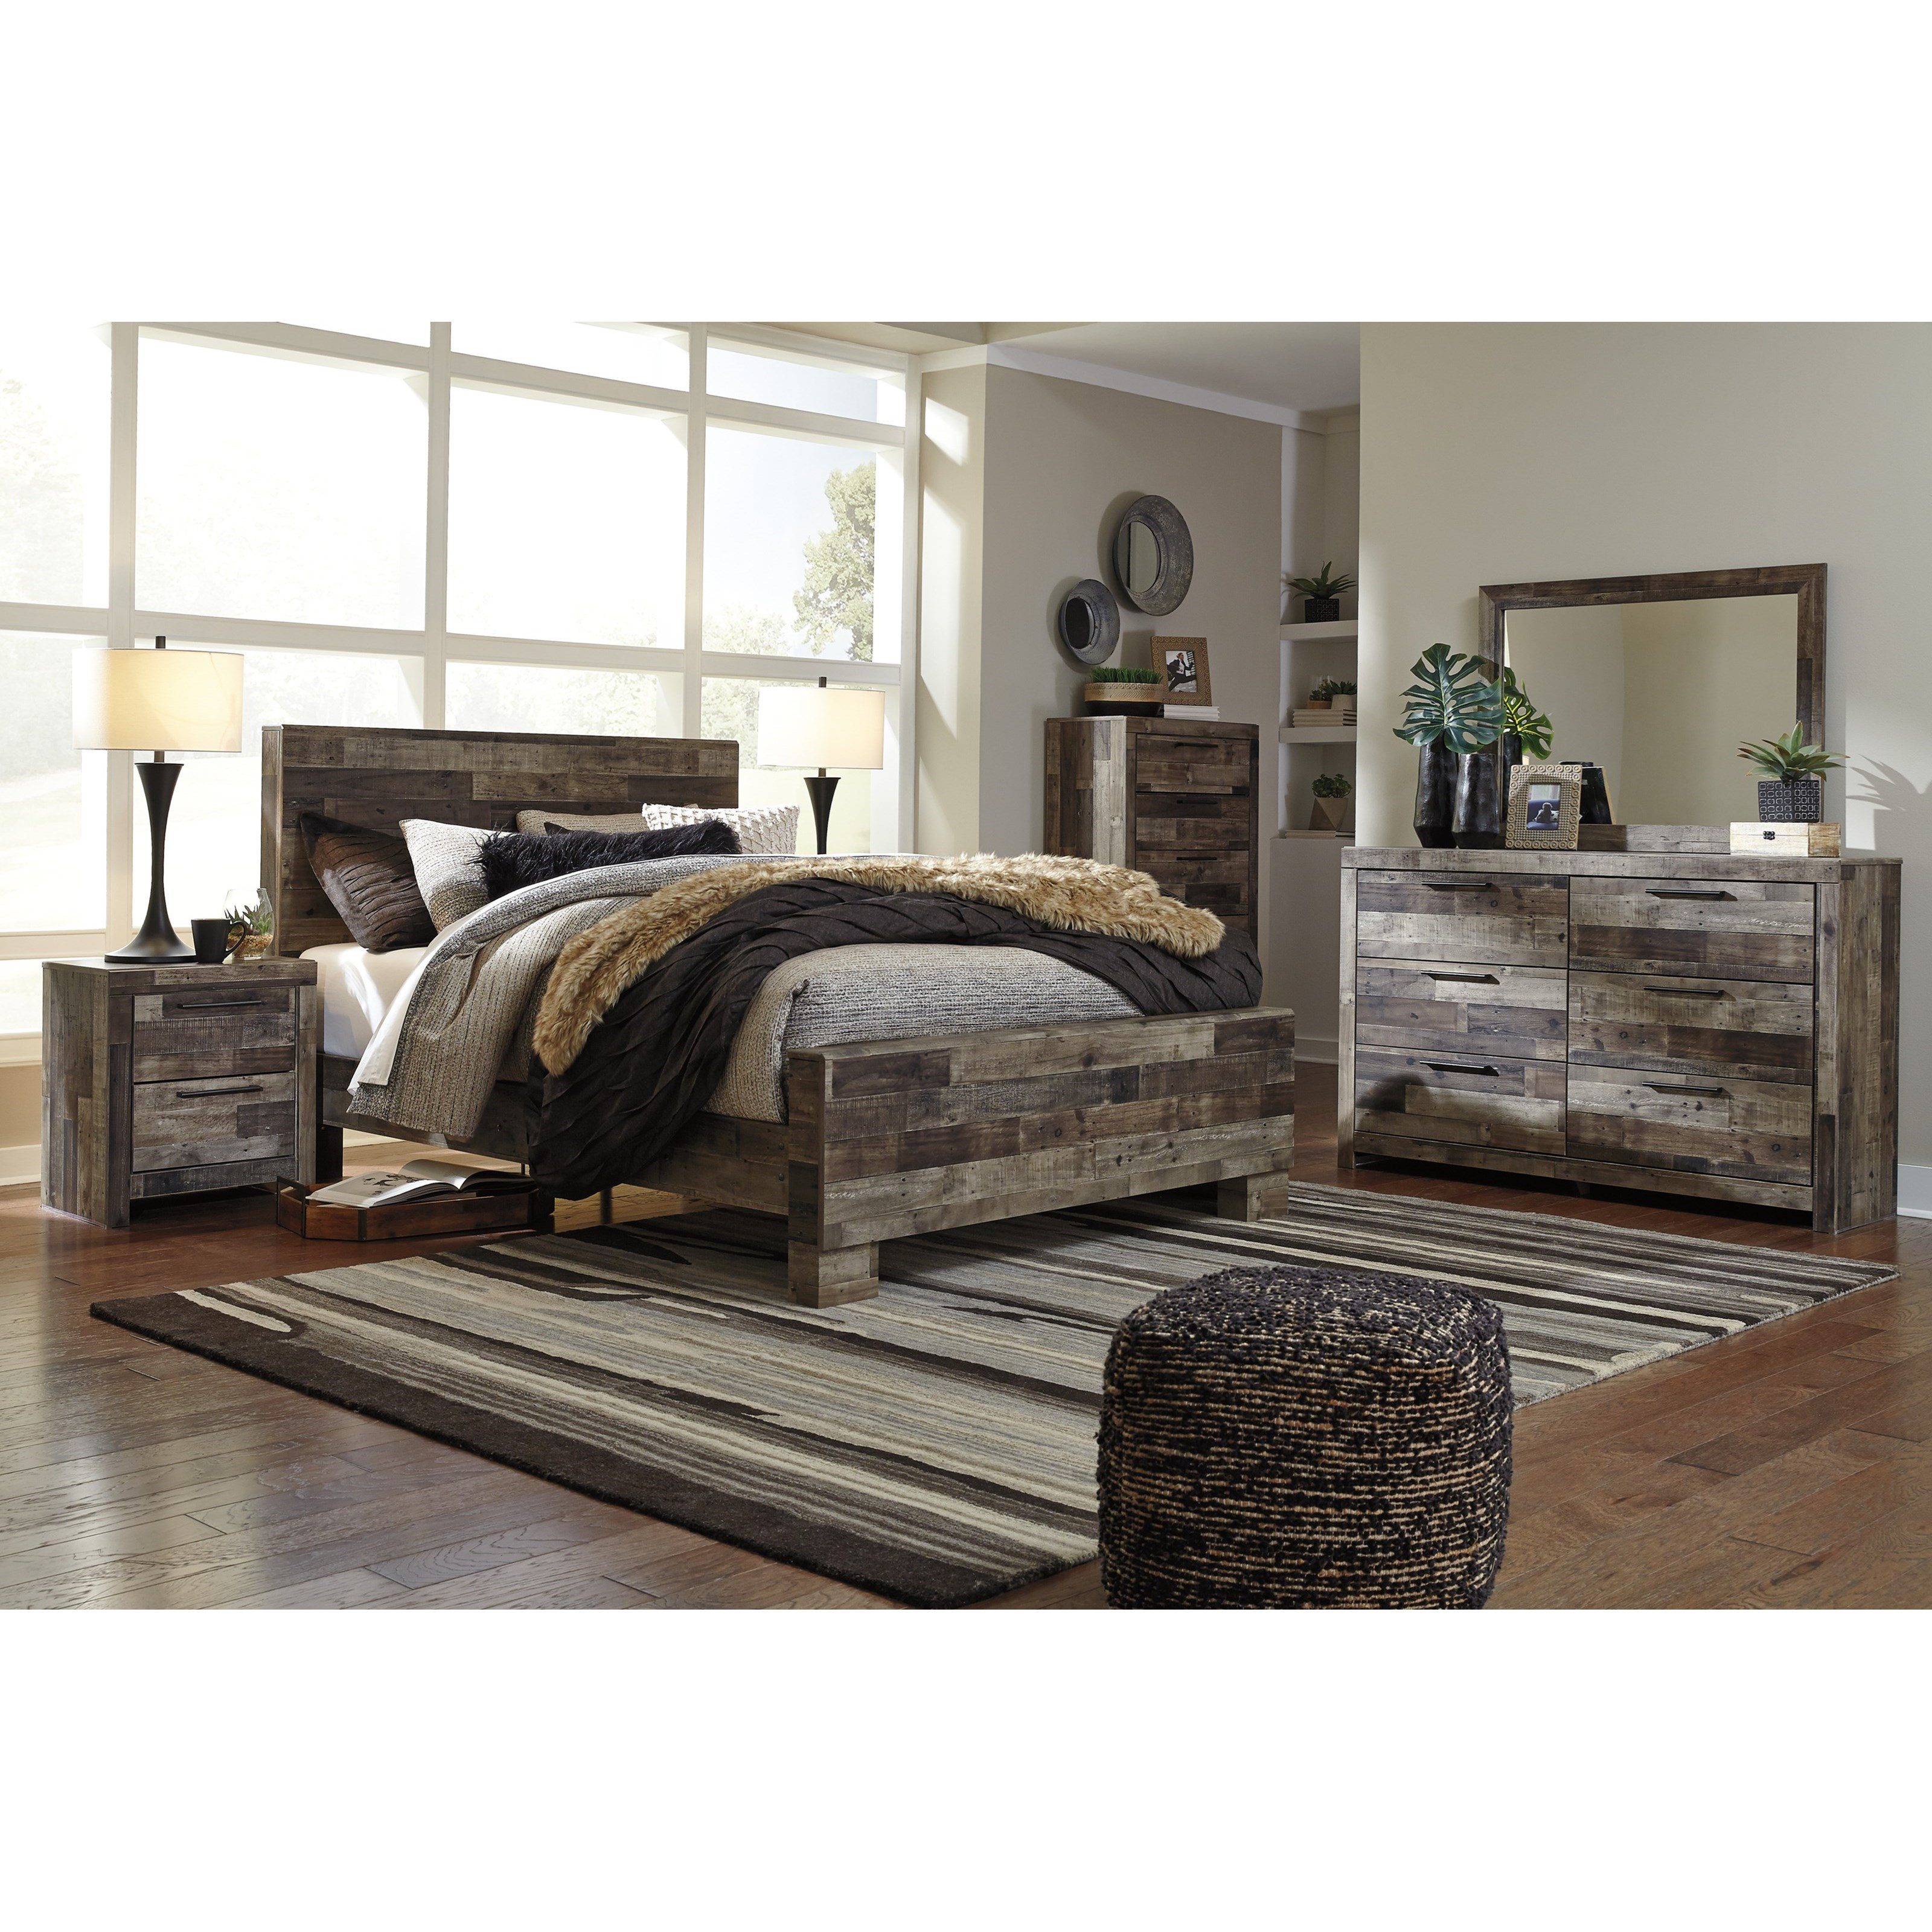 Derekson Full Bedroom Group by Benchcraft at Northeast Factory Direct